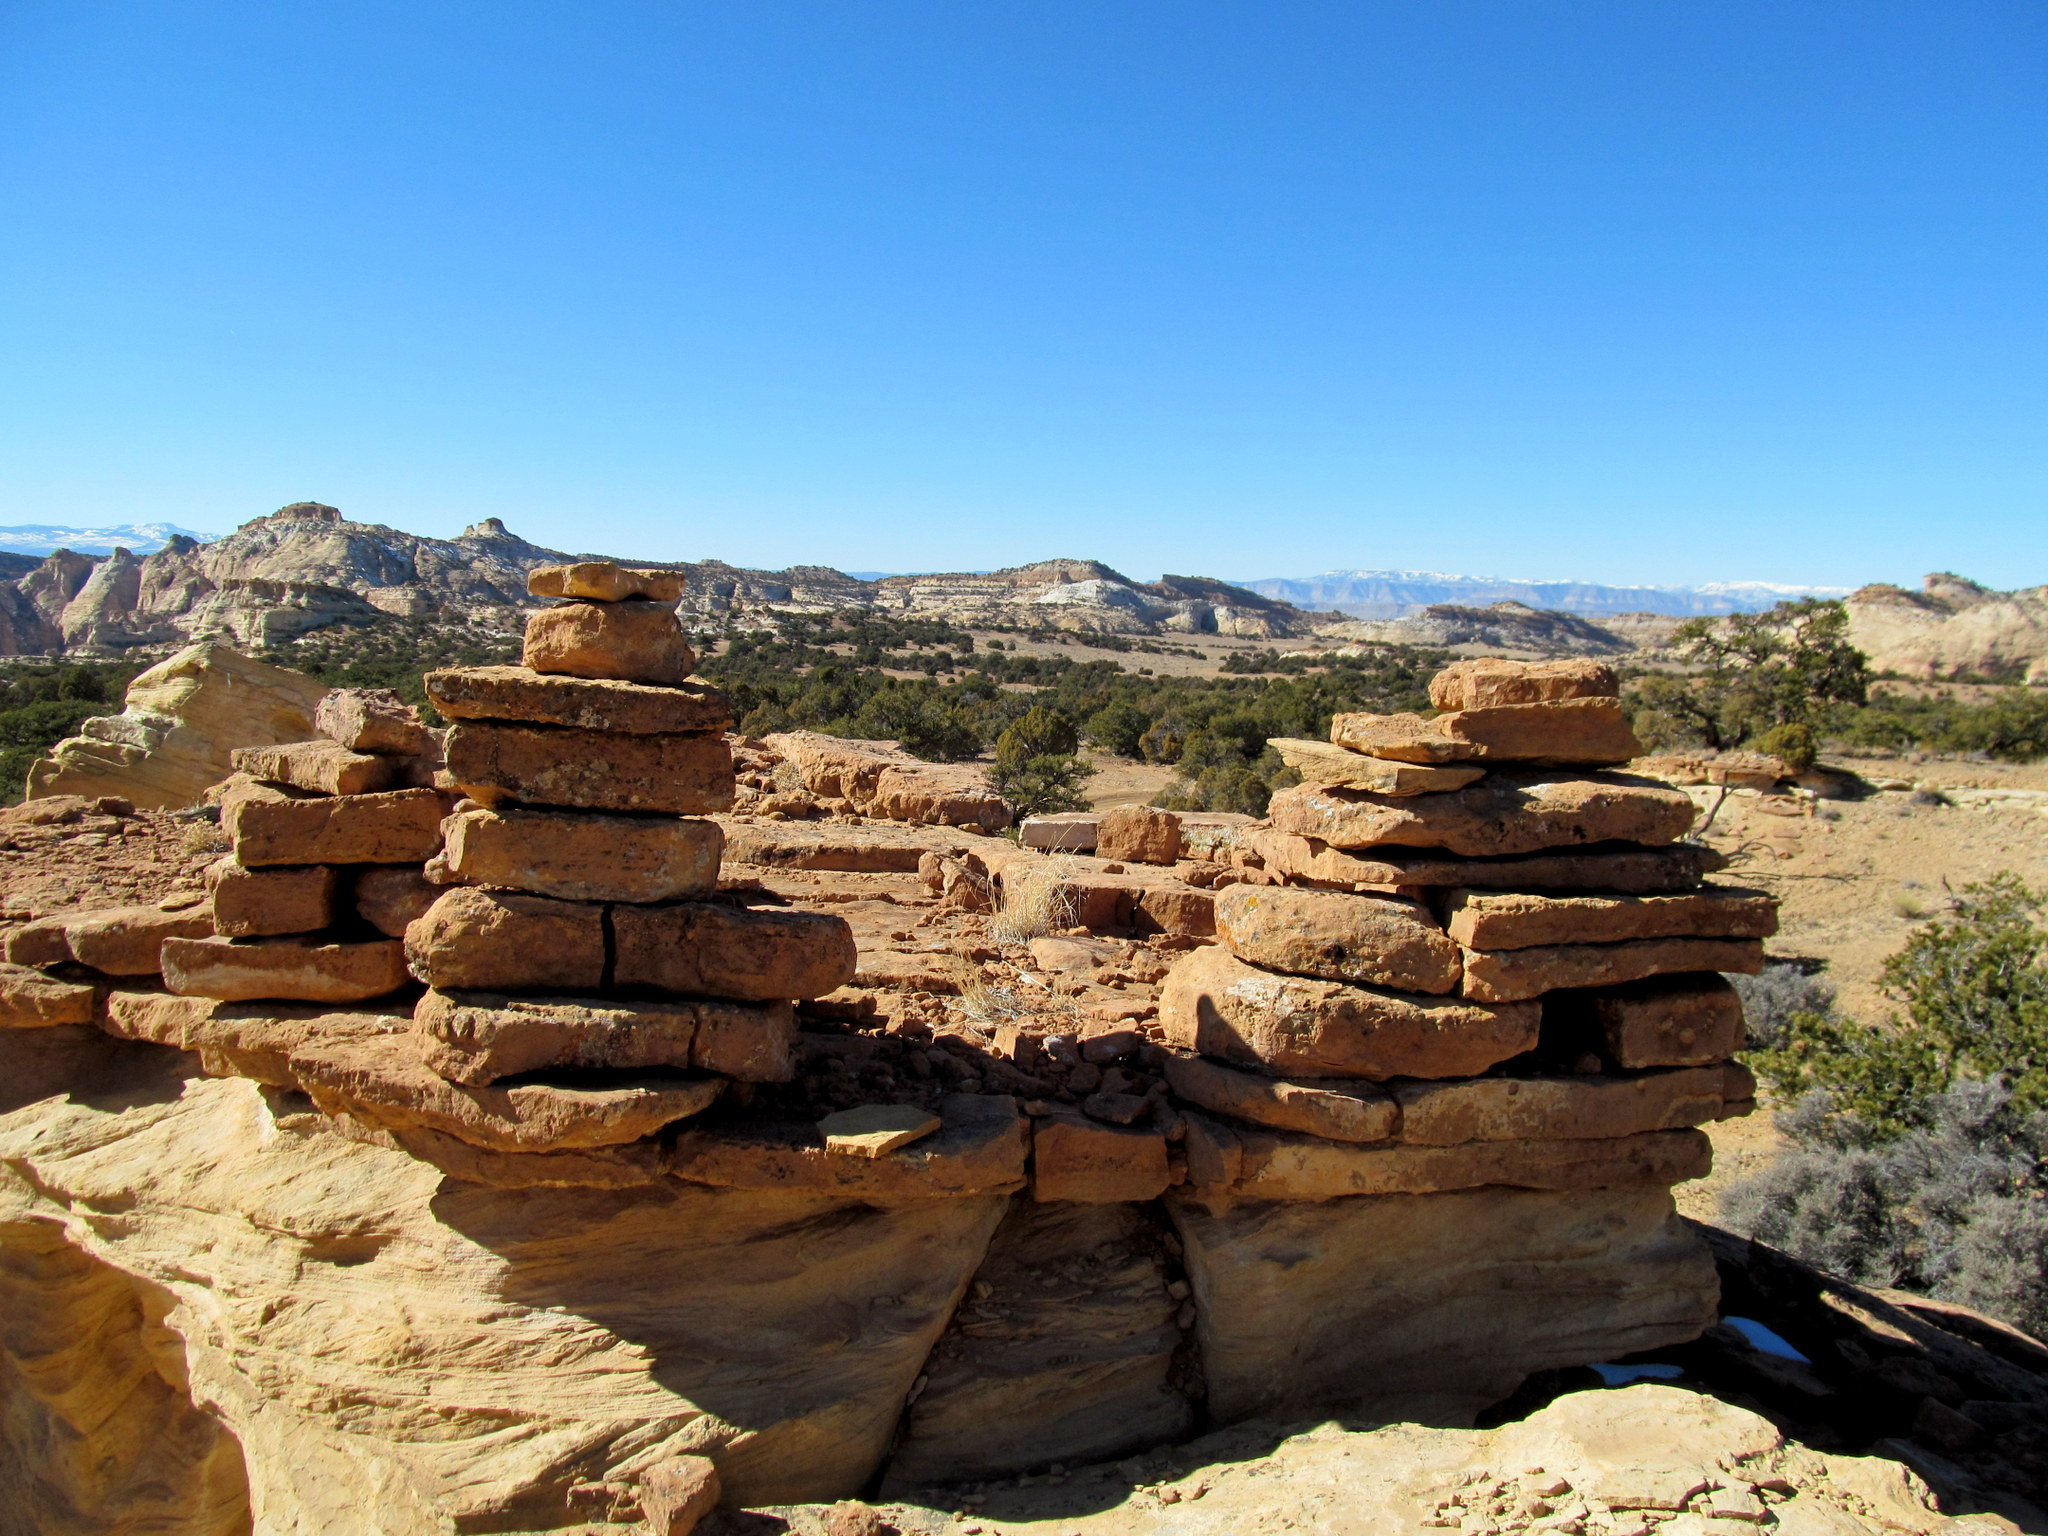 Photo: Stacked rocks near the Window